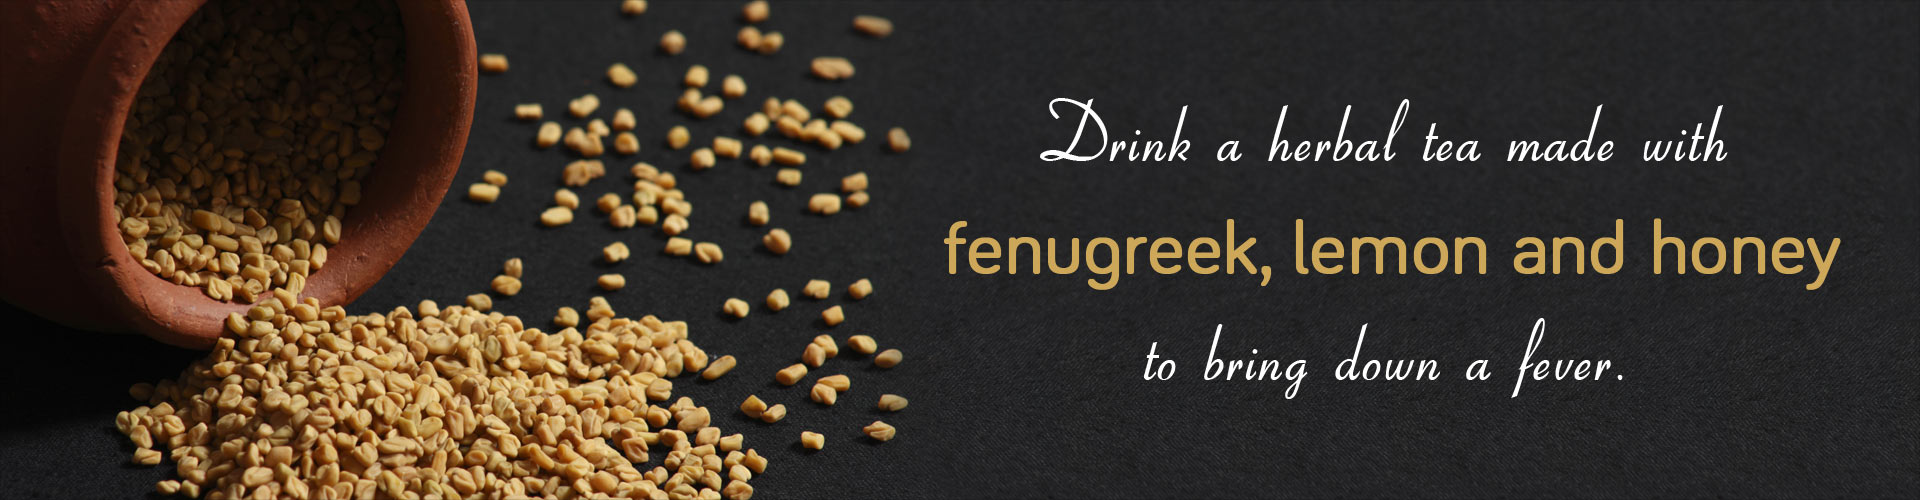 Drink a herbal tea made with fenugreek, lemon and honey to bring down a fever.